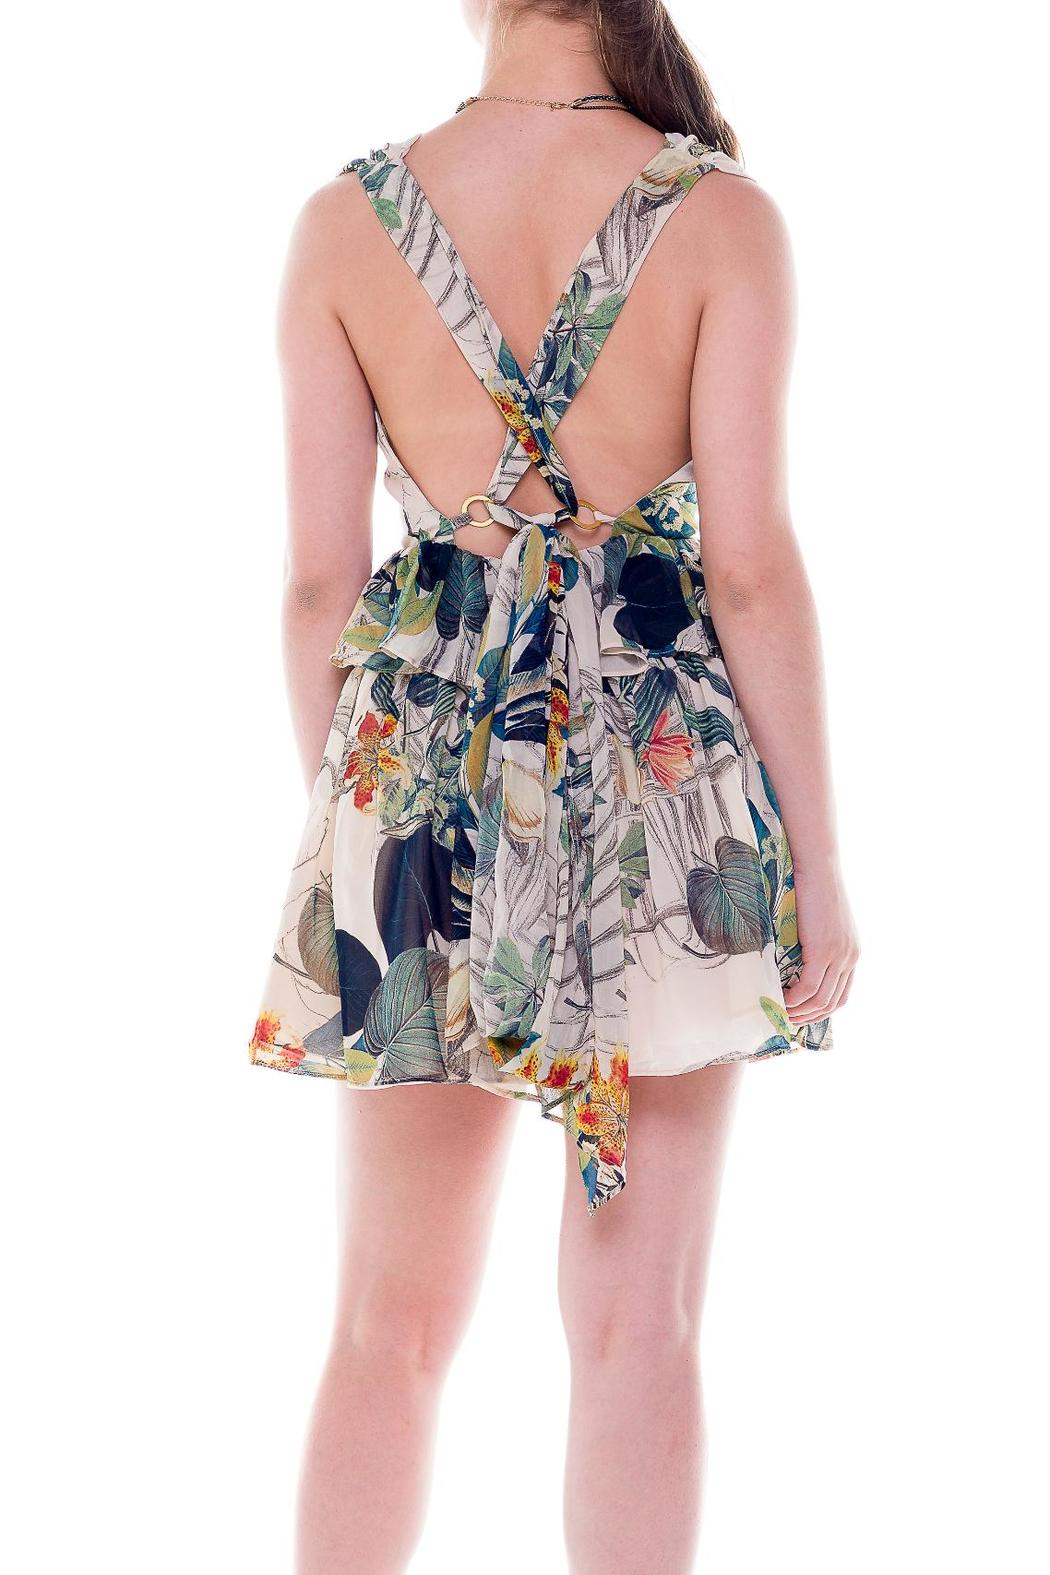 Free shipping Notched Plus Size Floral Fitted Peplum Dress WHITE XL under $ in Dresses online store. Best Short Chiffon Dress With Sleeves Online and Zip Up Dress .